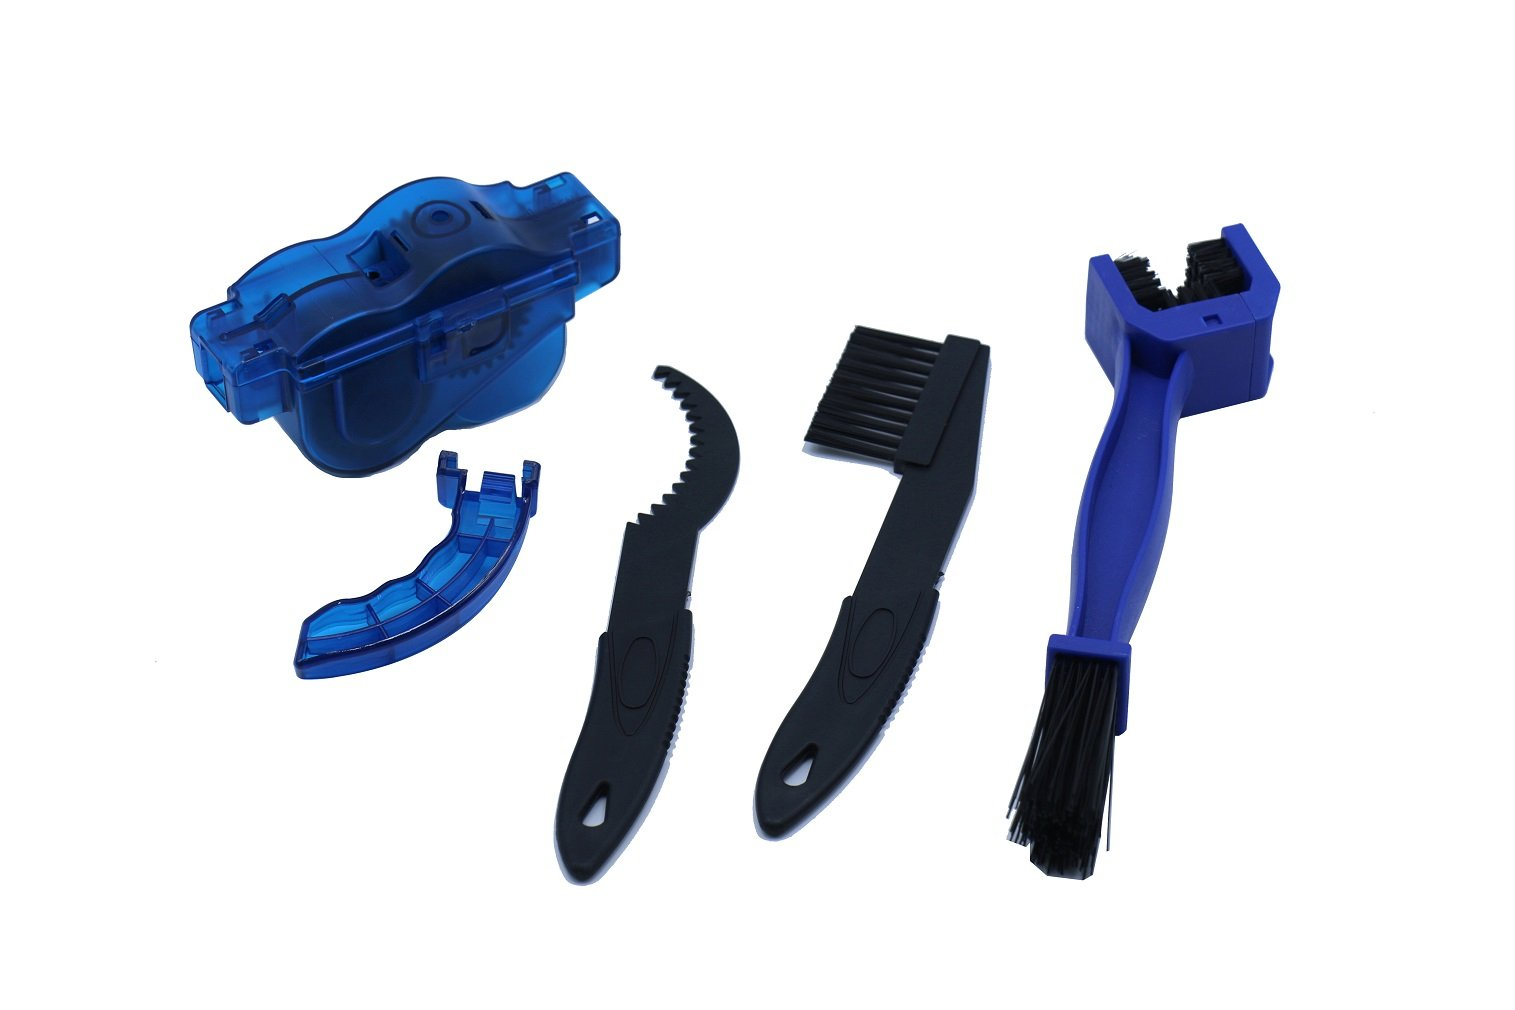 FUYUFU Cleaning Tools Bicycle Chain lngings Simple Cleaning Kit Chain Cleaning System